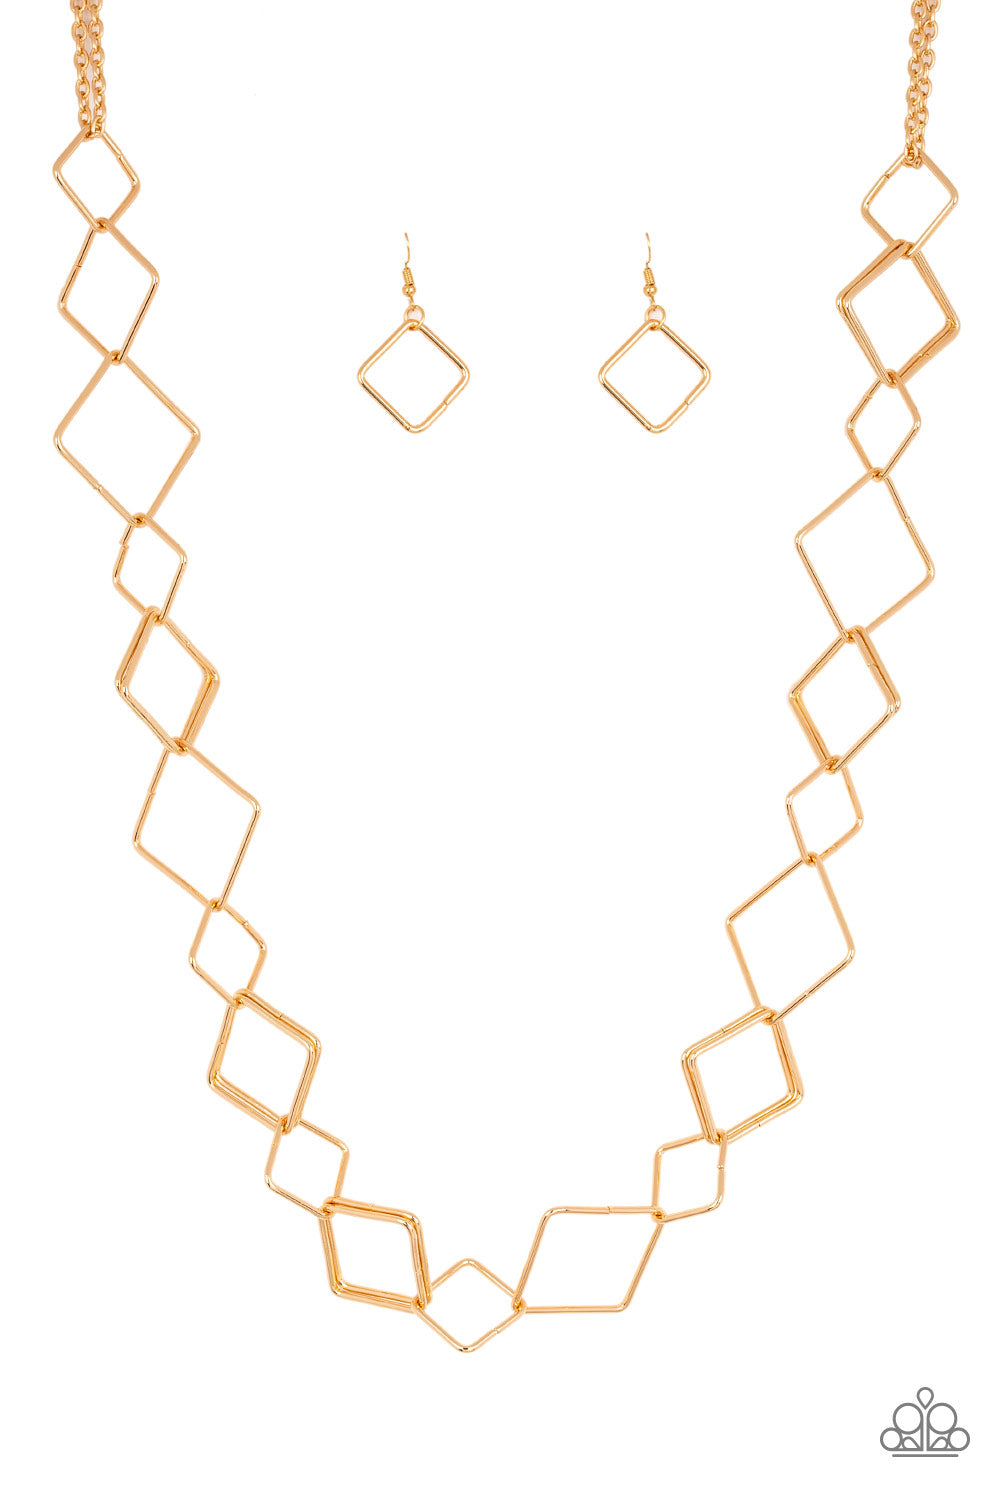 Paparazzi Backed Into A Corner - Gold Necklace - Be Adored Jewelry